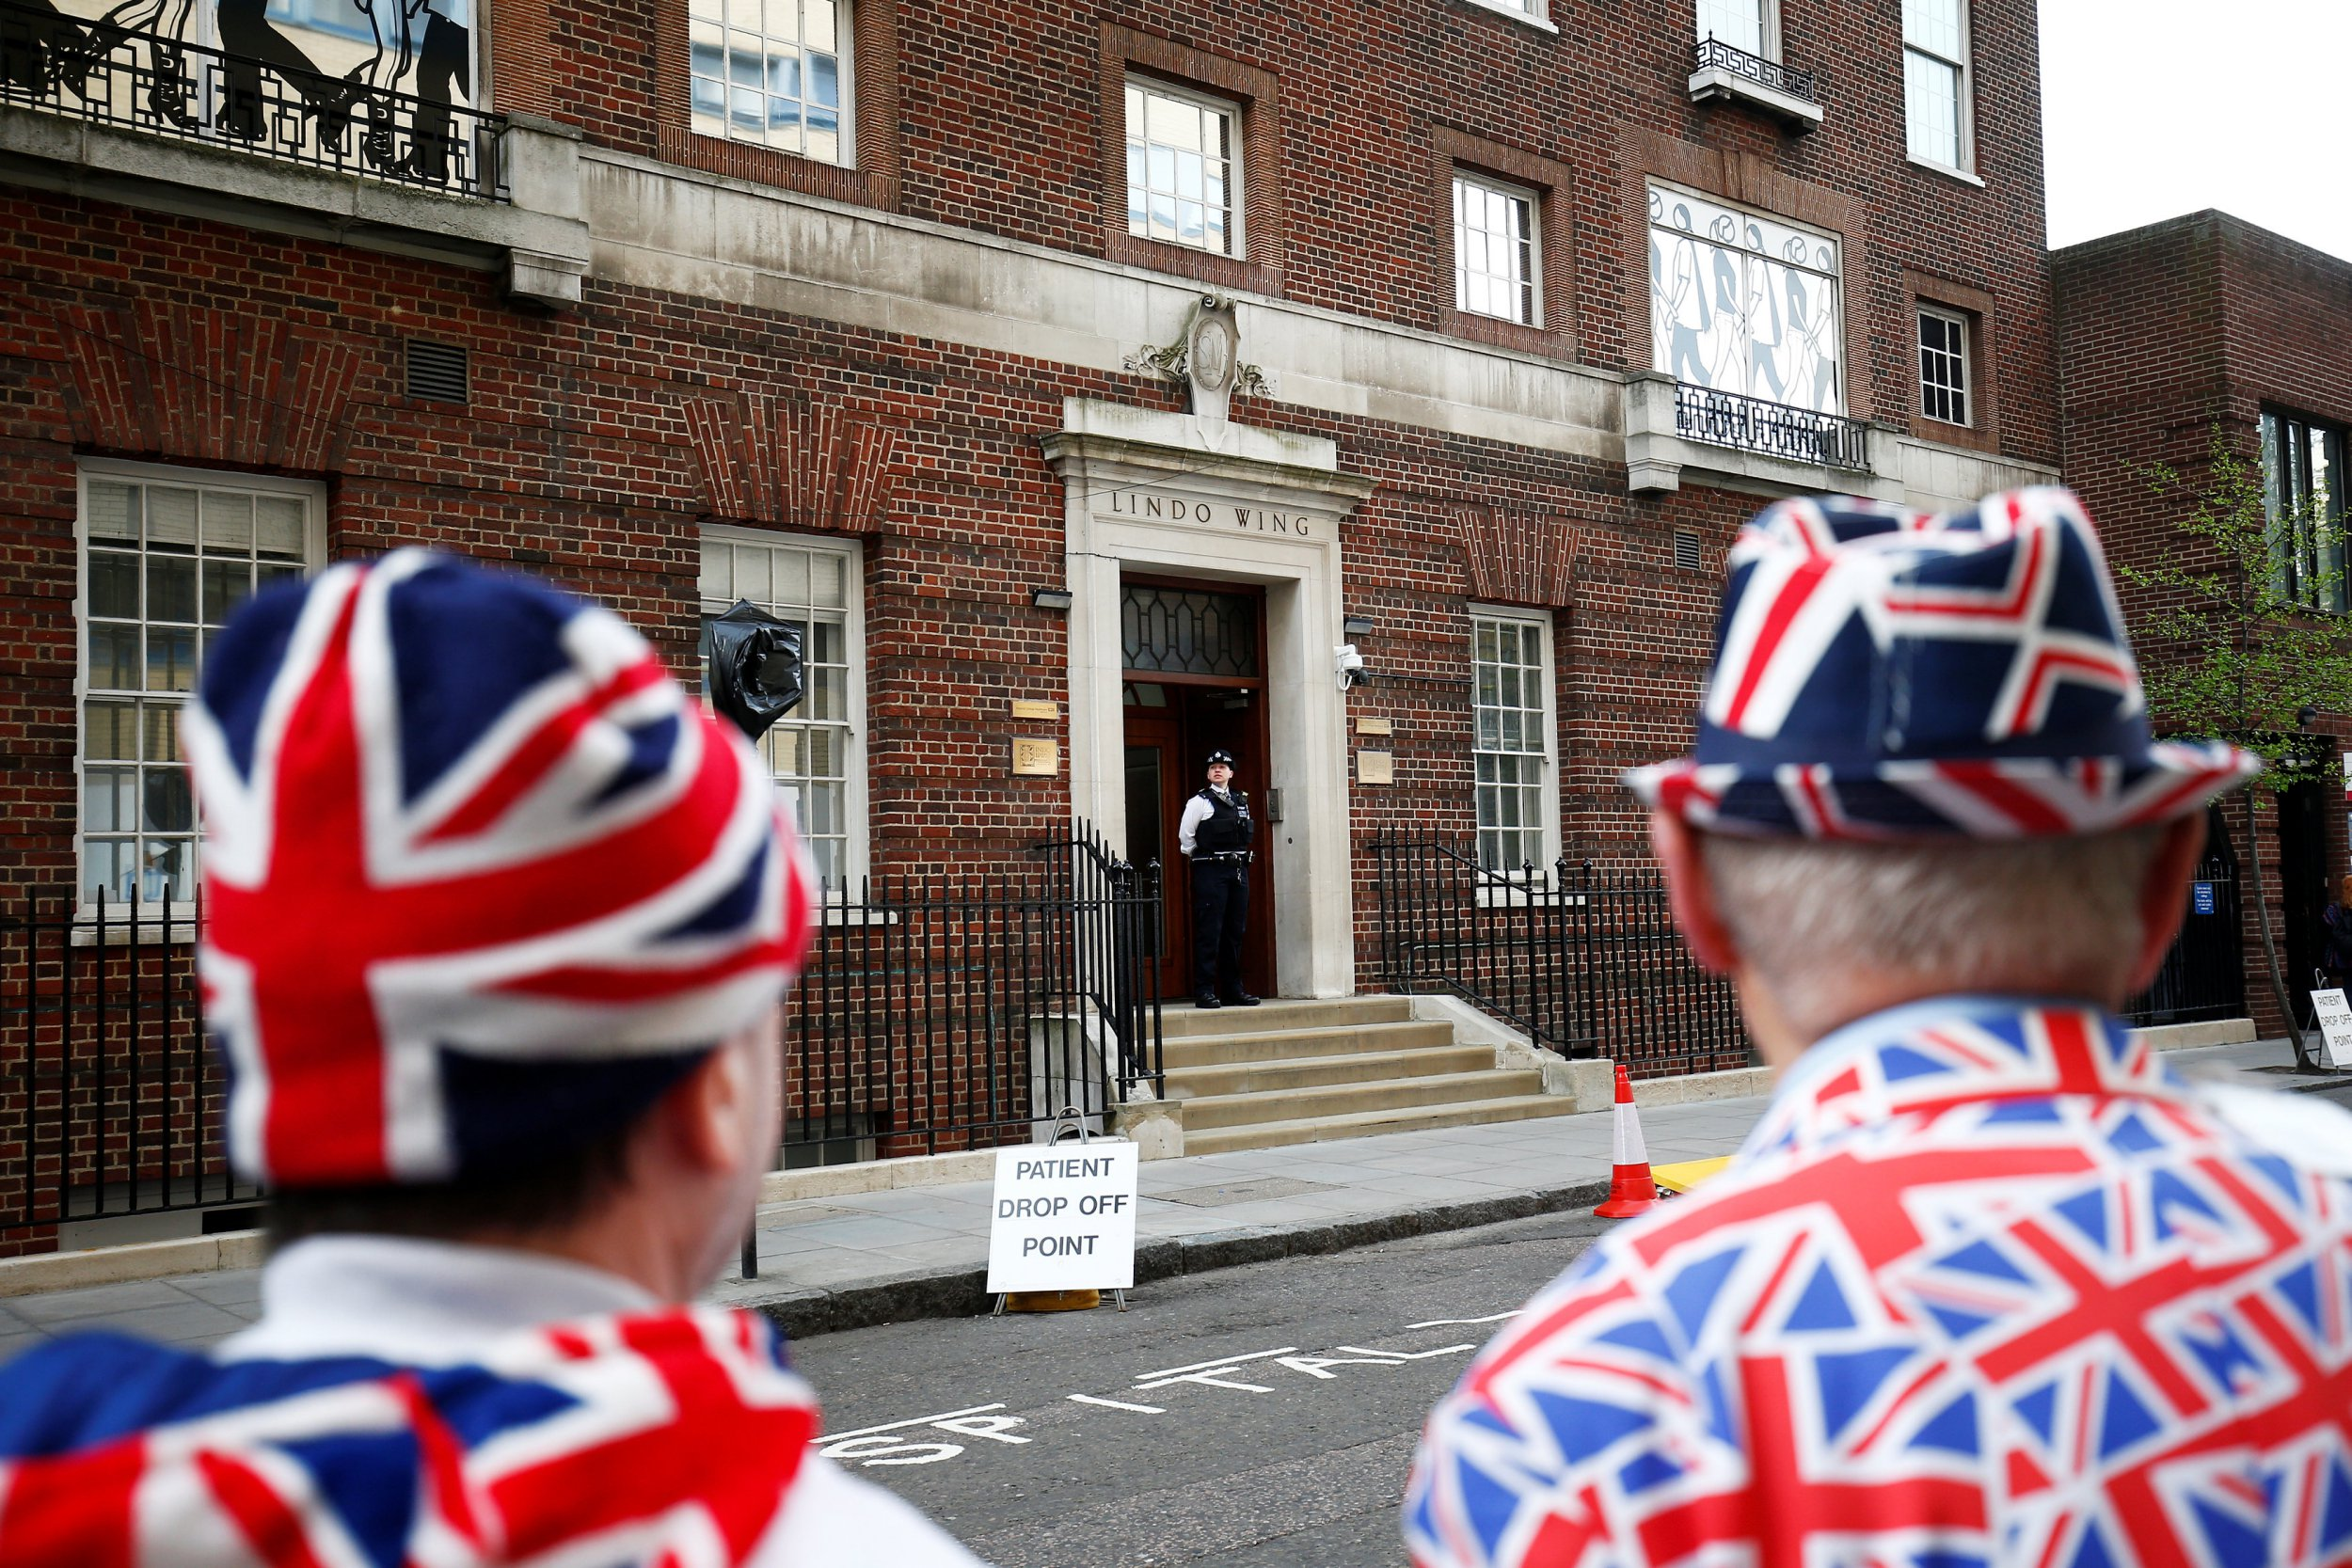 Supporters of the royal family stand outside the Lindo Wing of St Mary's Hospital after Britain's Catherine, the Duchess of Cambridge, was admitted after going into labour ahead of the birth of her third child, in London, April 23, 2018. REUTERS/Henry Nicholls